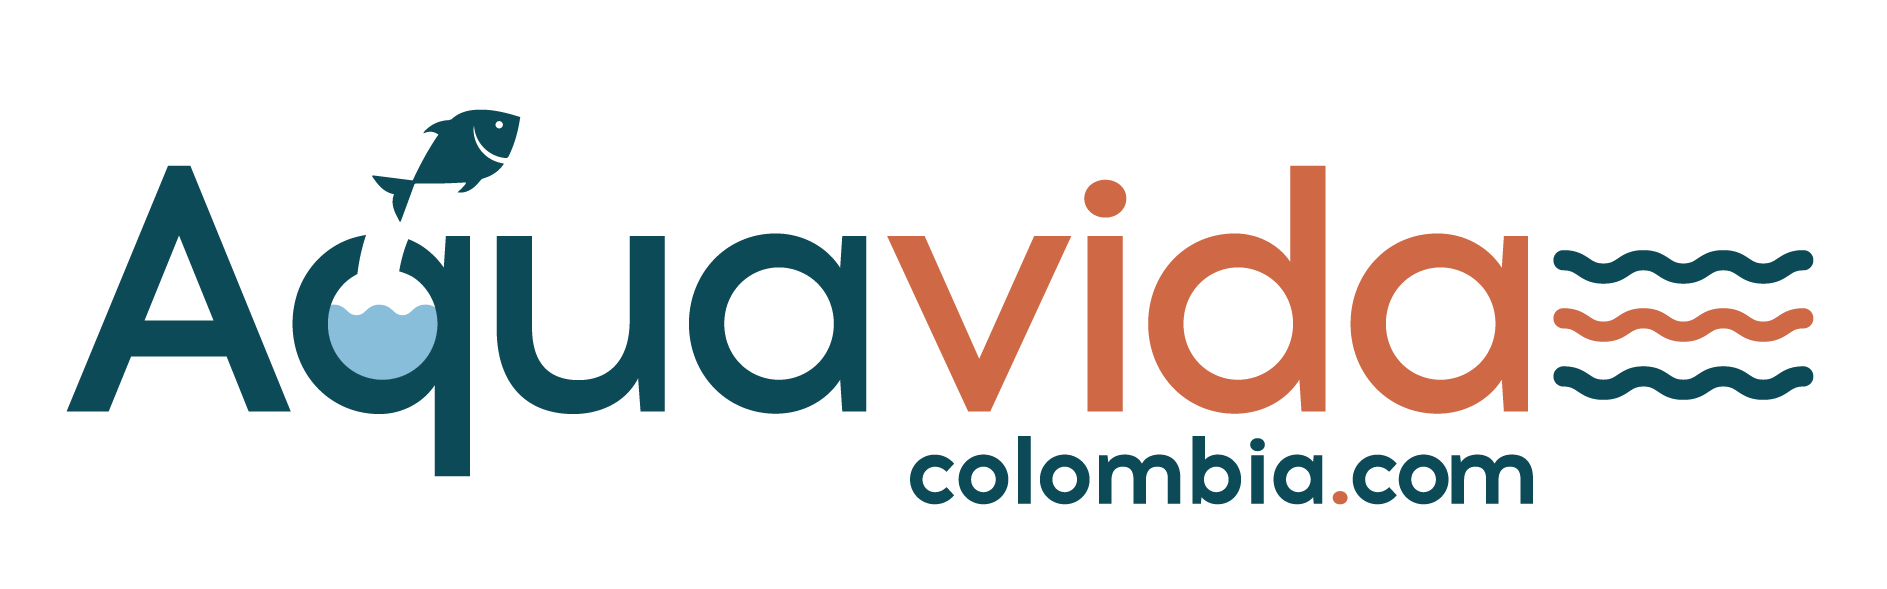 Aquavida Colombia